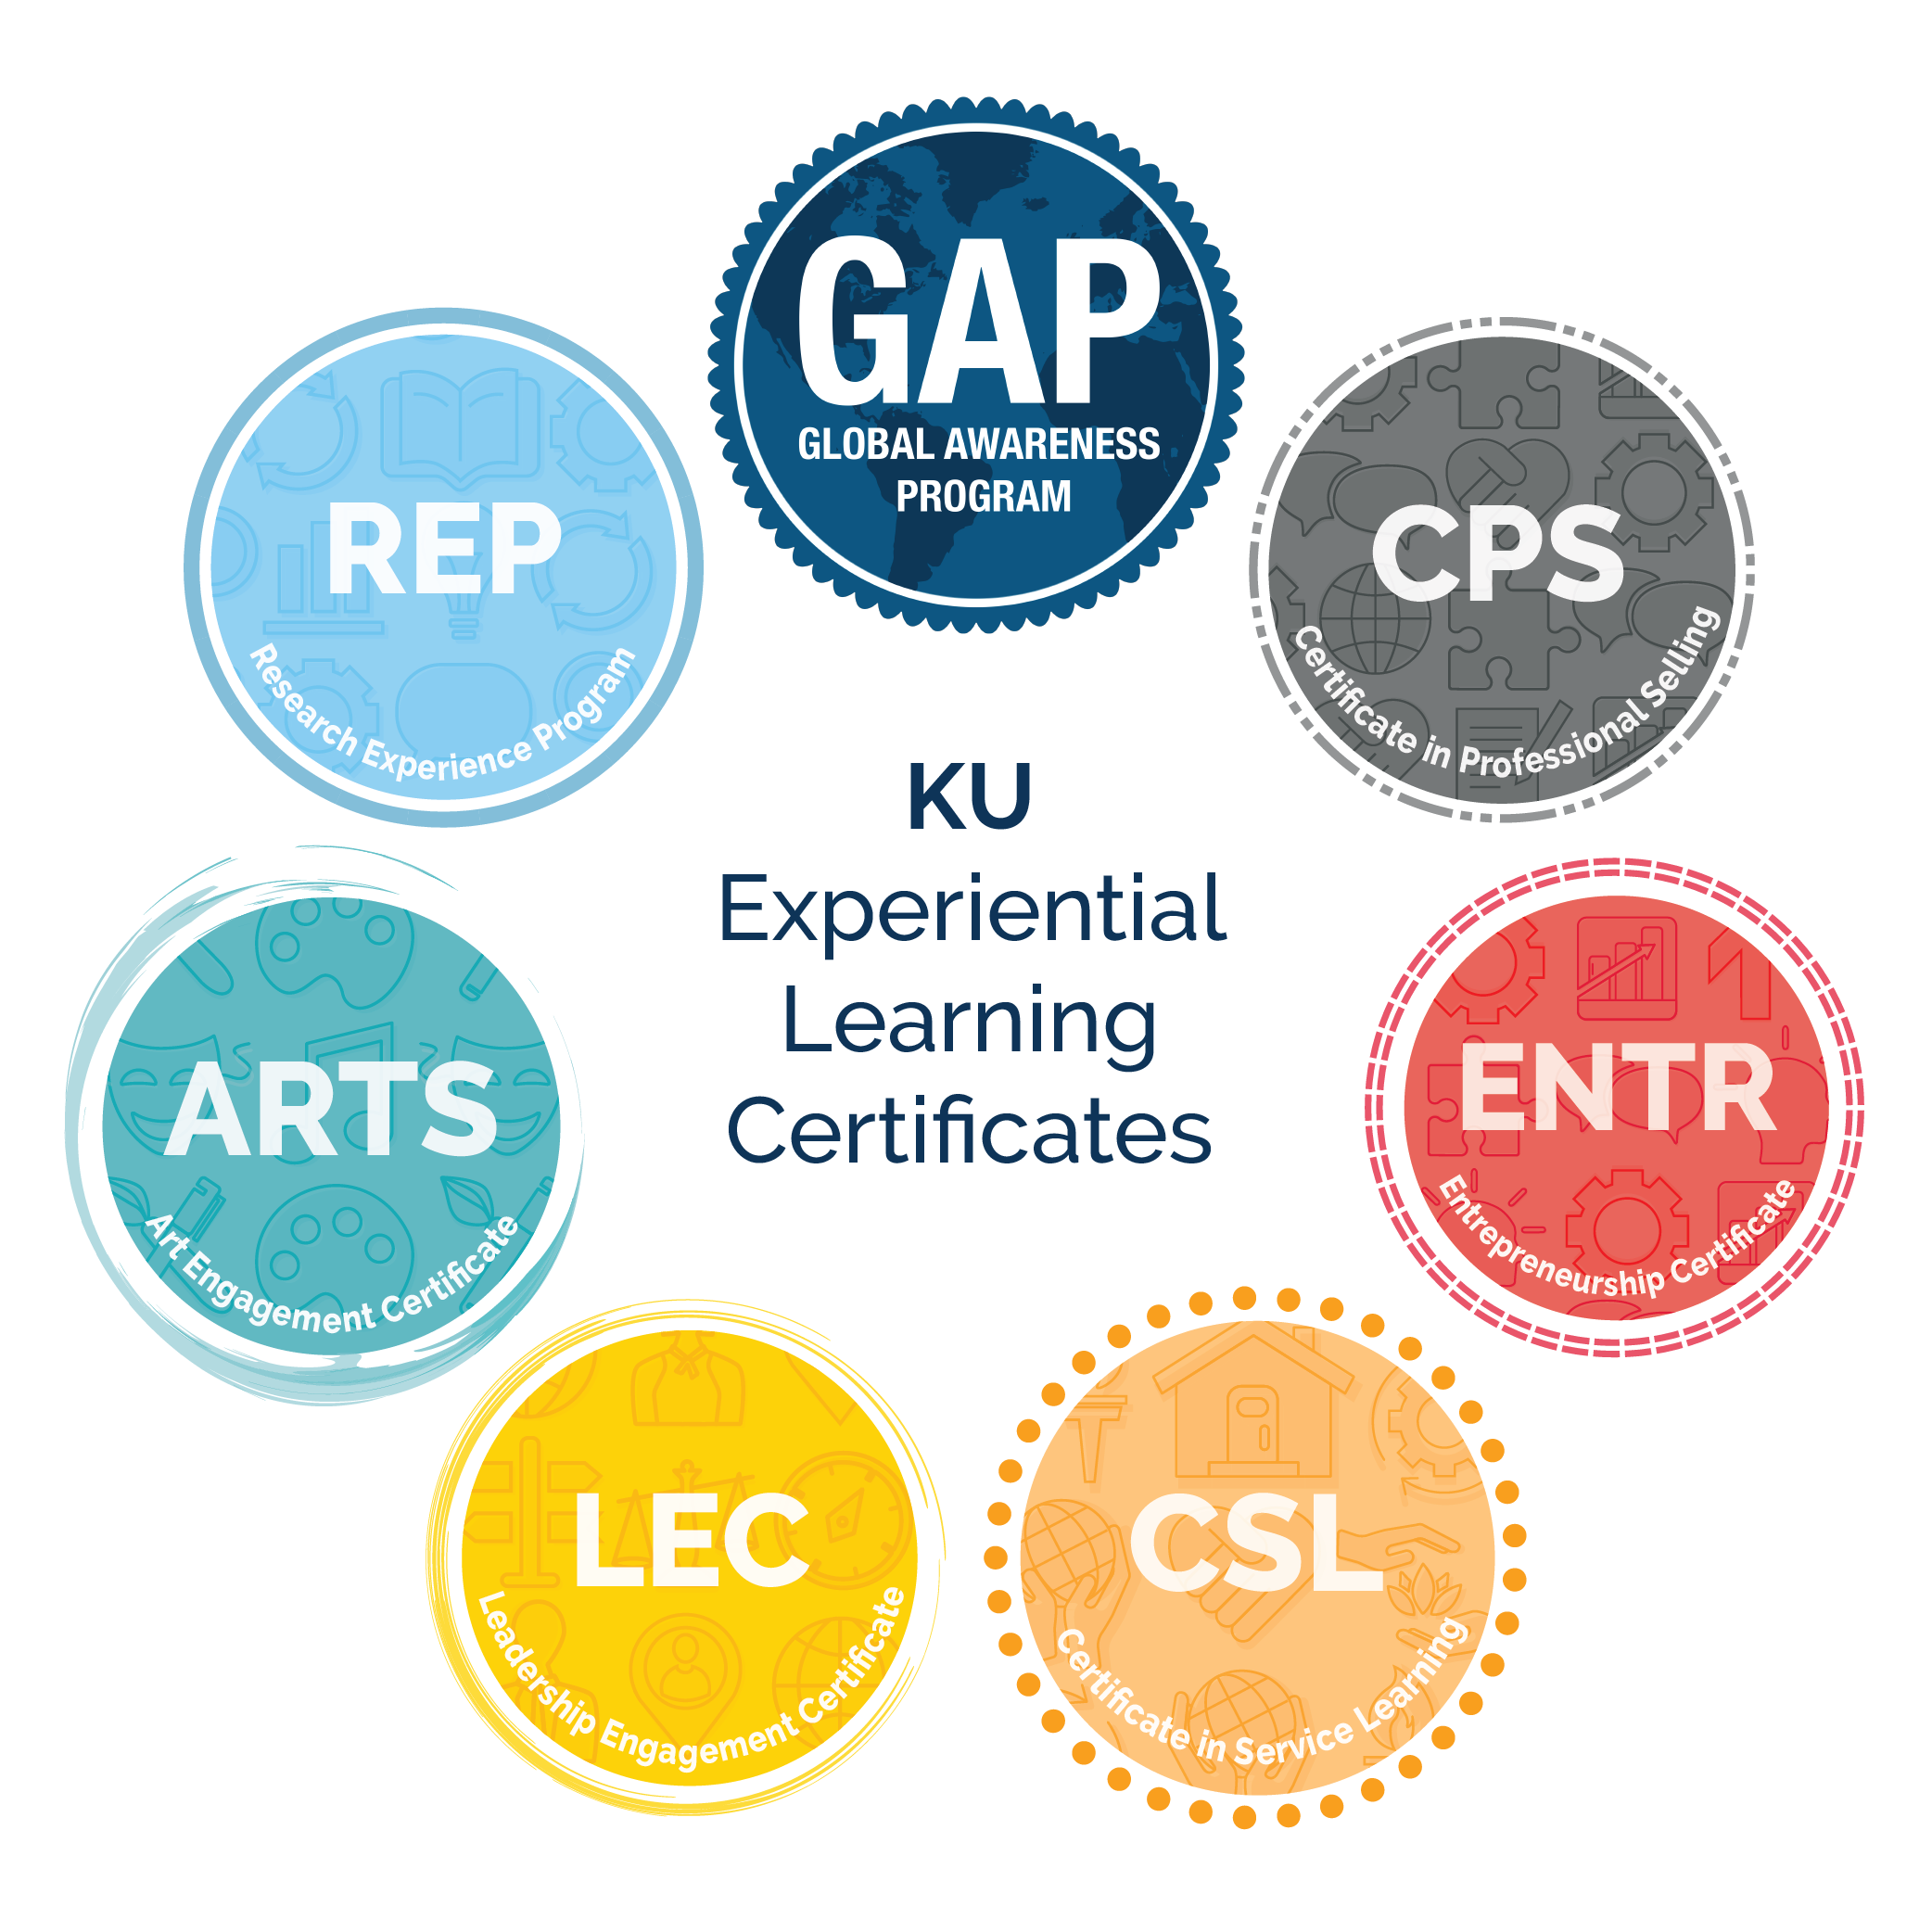 certificate program icons surrounding Experiential Learning Certificate text